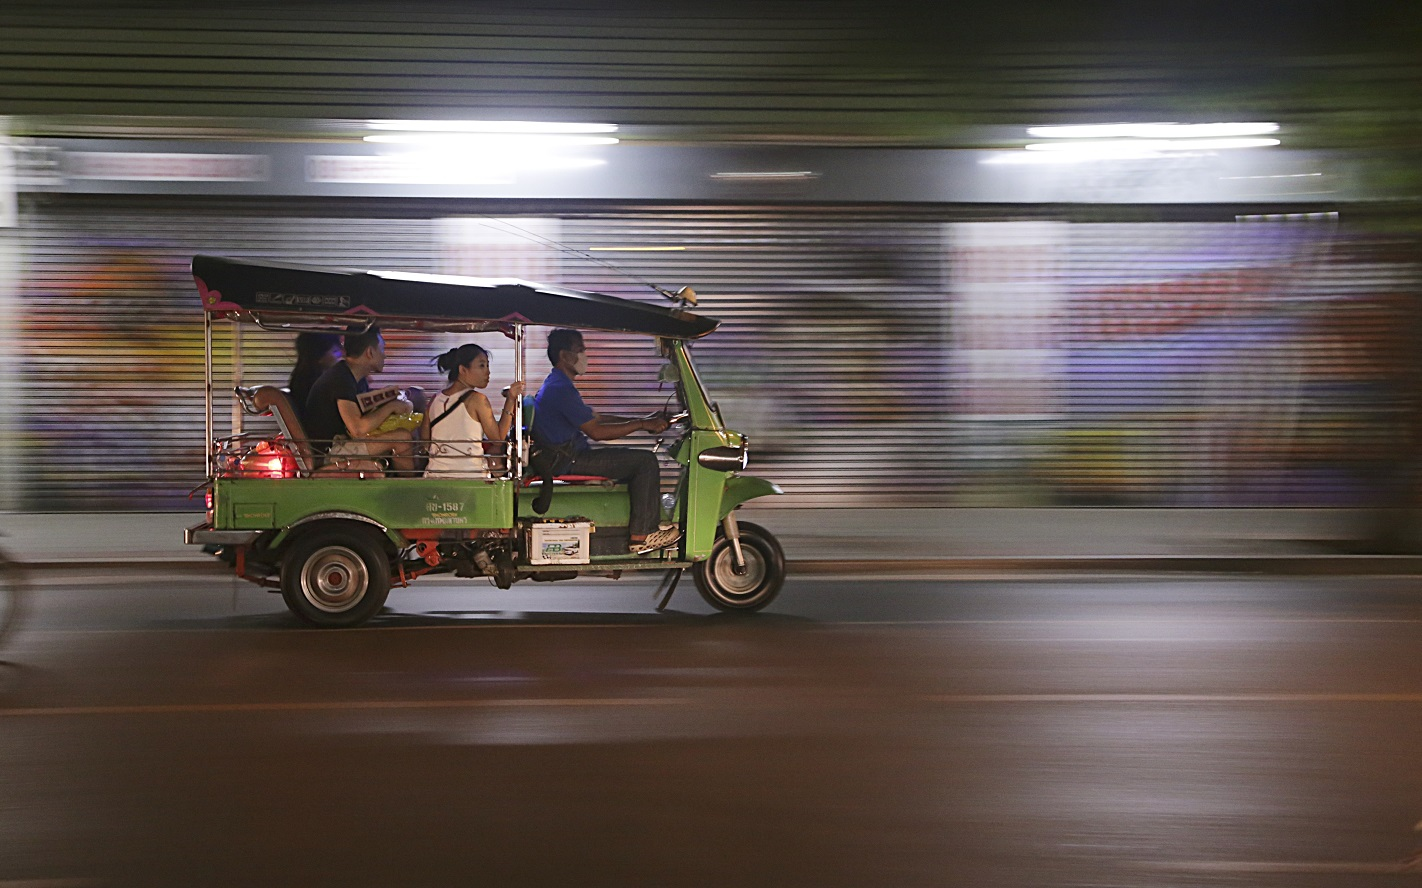 Thailand in the Rain. Tuk-Tuk racing